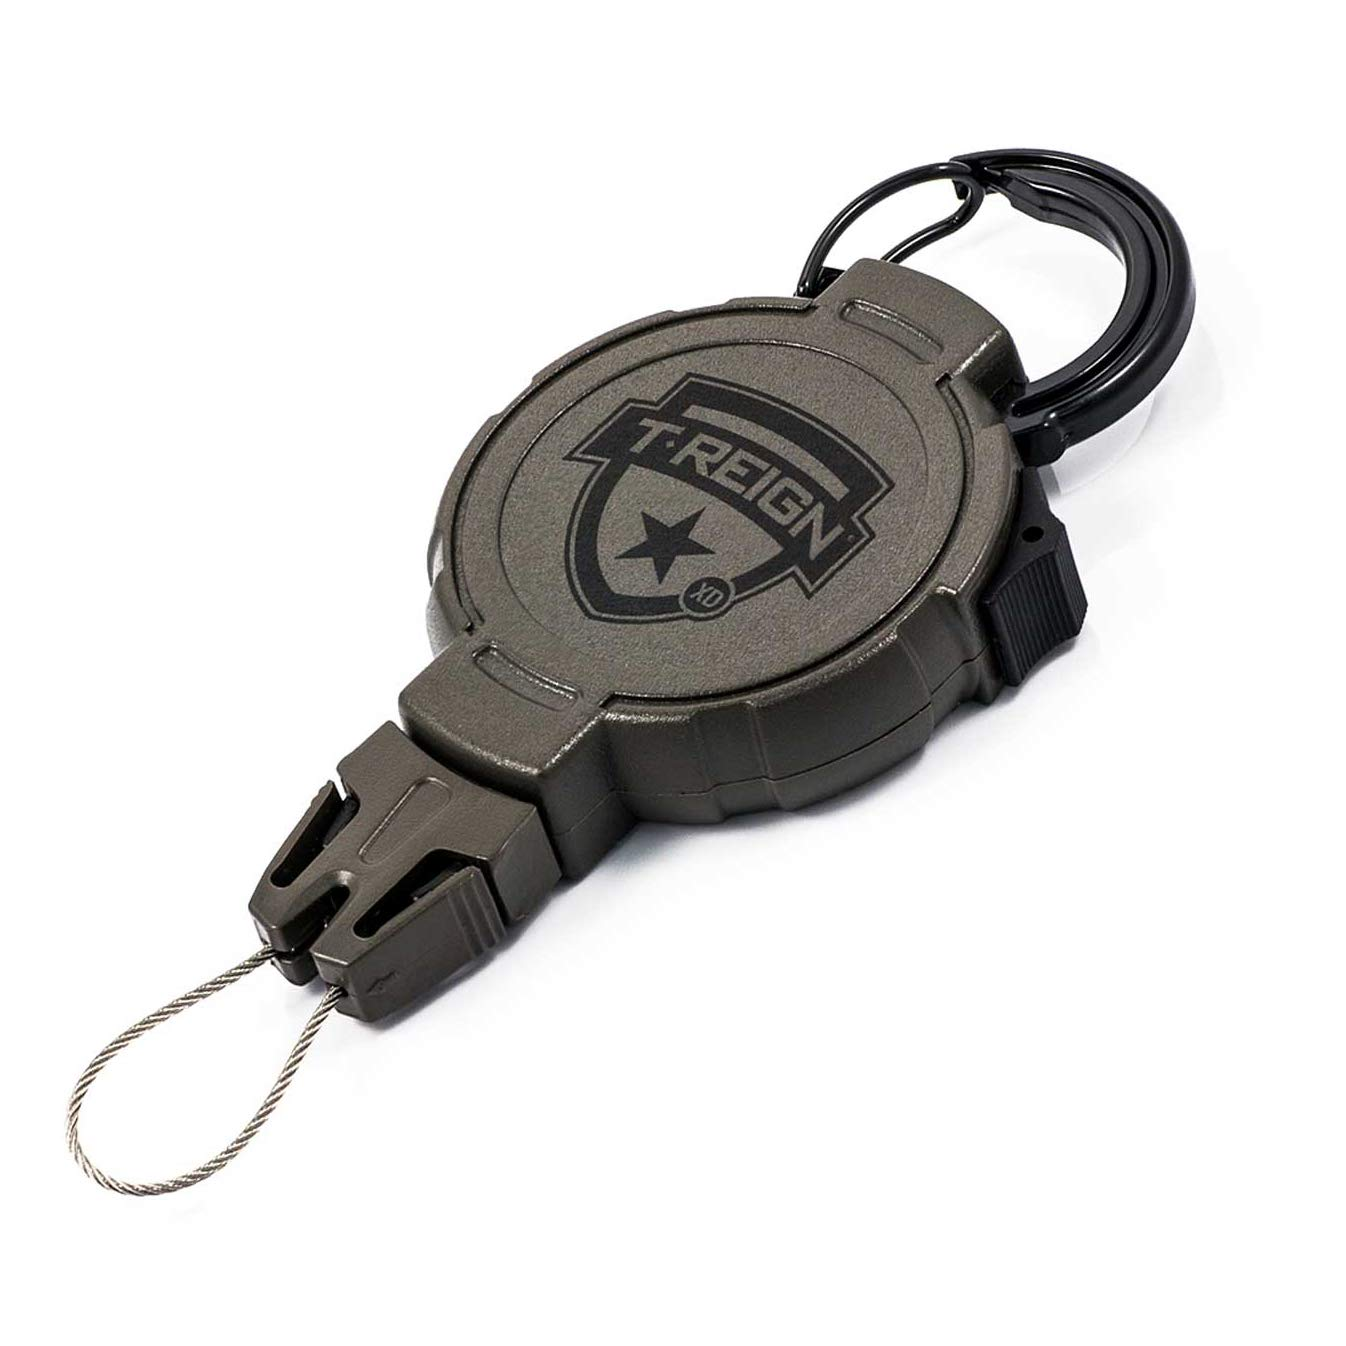 T-REIGN Hunting XD Retractable Gear Tether, Carabiner, 36'' Kevlar Cord, 14 oz. Retraction, Green Polycarbonate Case, Universal Attachment